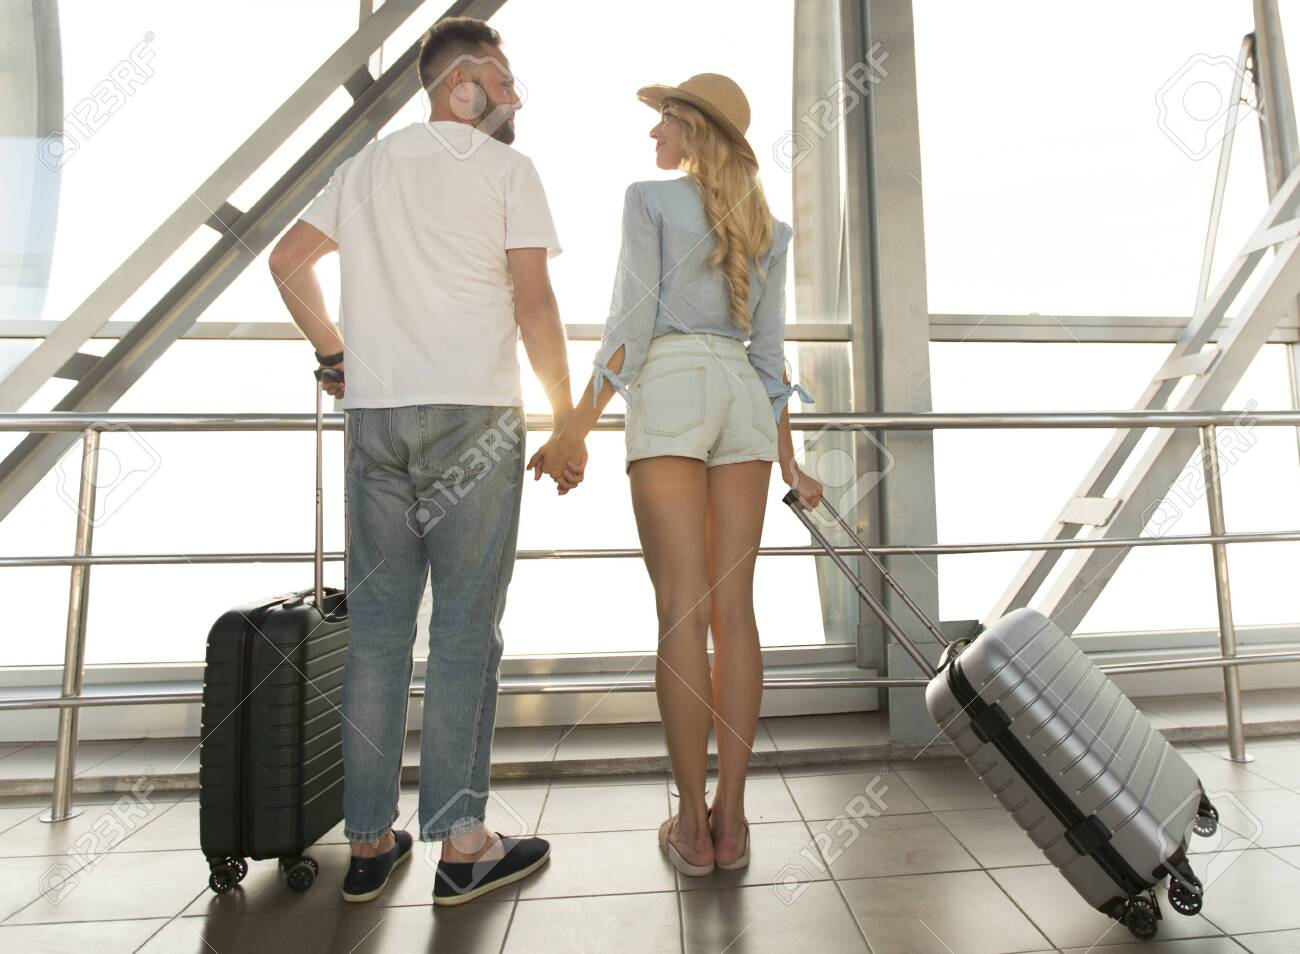 Traveling concept. Loving couple standing near window of international airport terminal, back view - 128090746